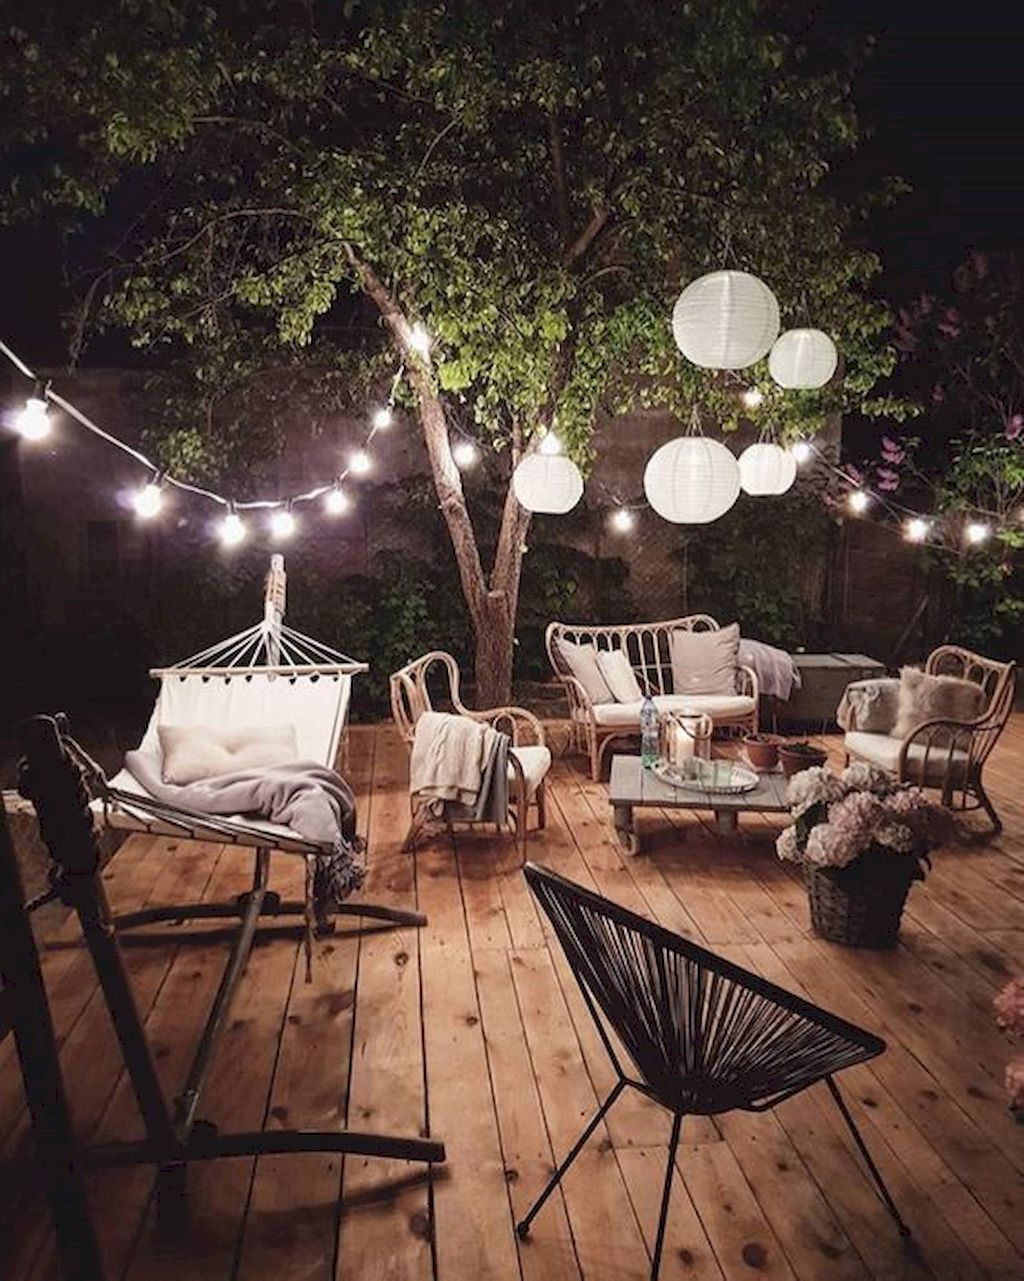 Adorable 65 Awesome Backyard Patio Deck Design And Decor Ideas Https Architeworks Com 65 Awesome Backyard Patio Backyard Patio Outdoor Christmas Diy Backyard